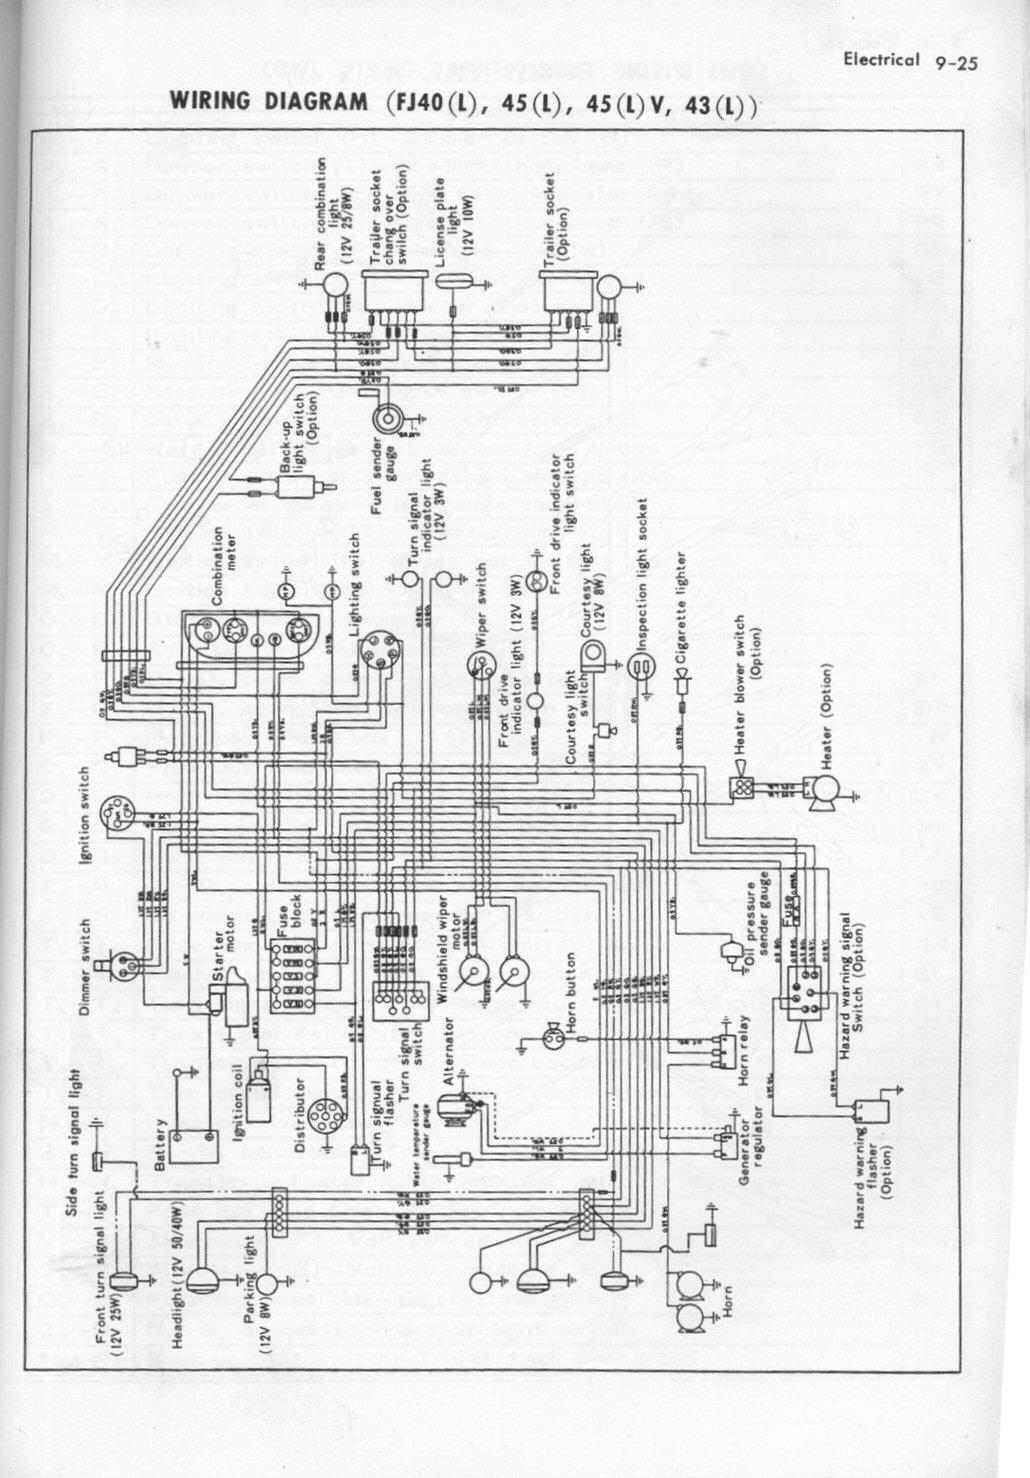 toyota fj40 wiring diagram - somurich.com 1978 toyota land cruiser wiring diagram 1998 toyota land cruiser wiring diagram #4